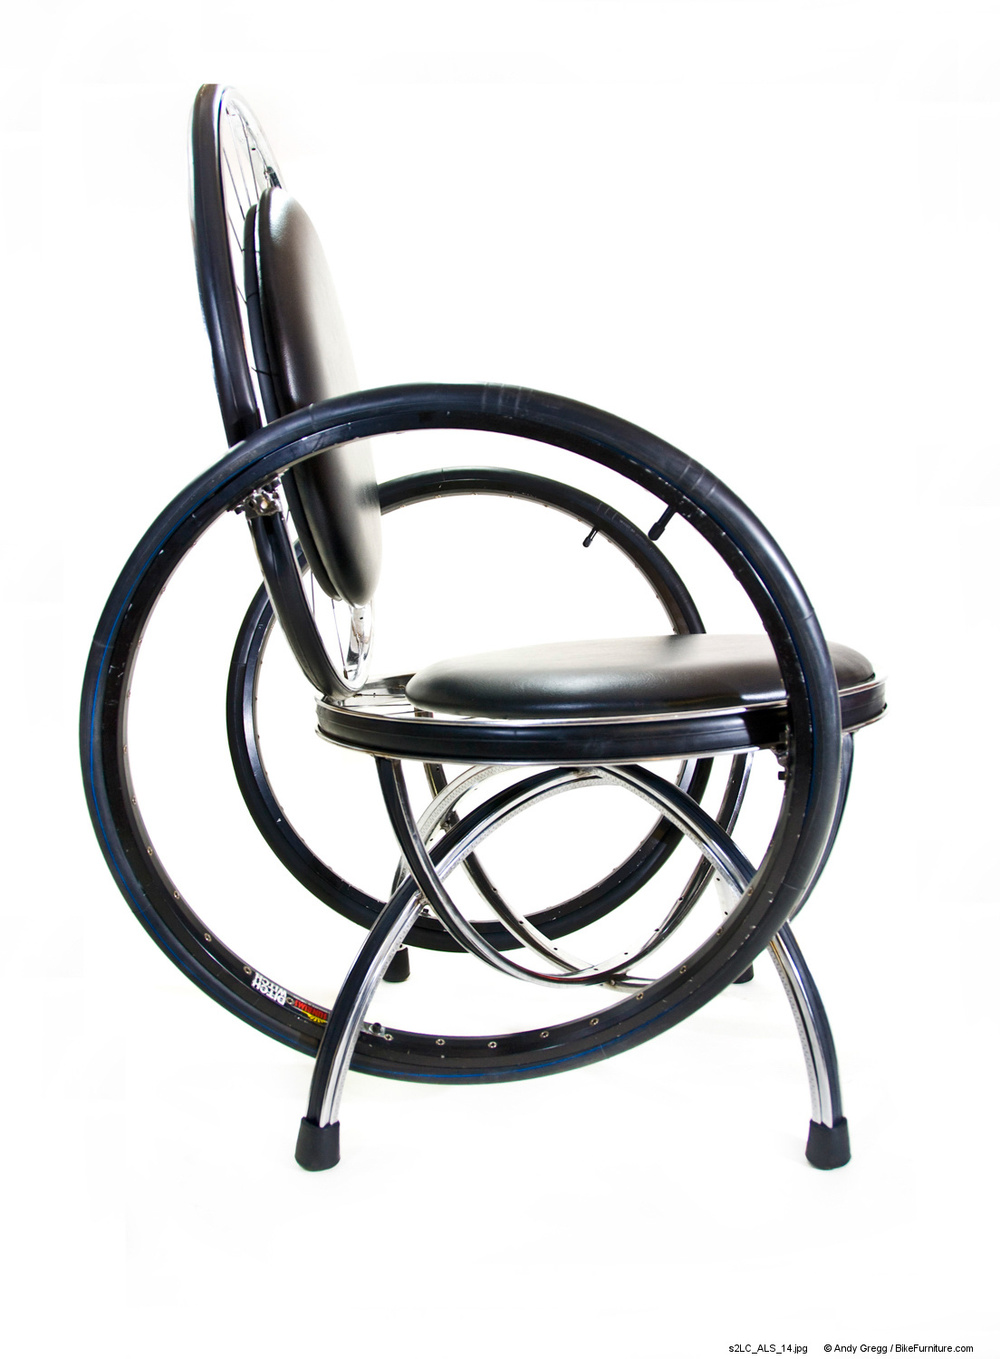 S-2 Lounge Chair - ALS model